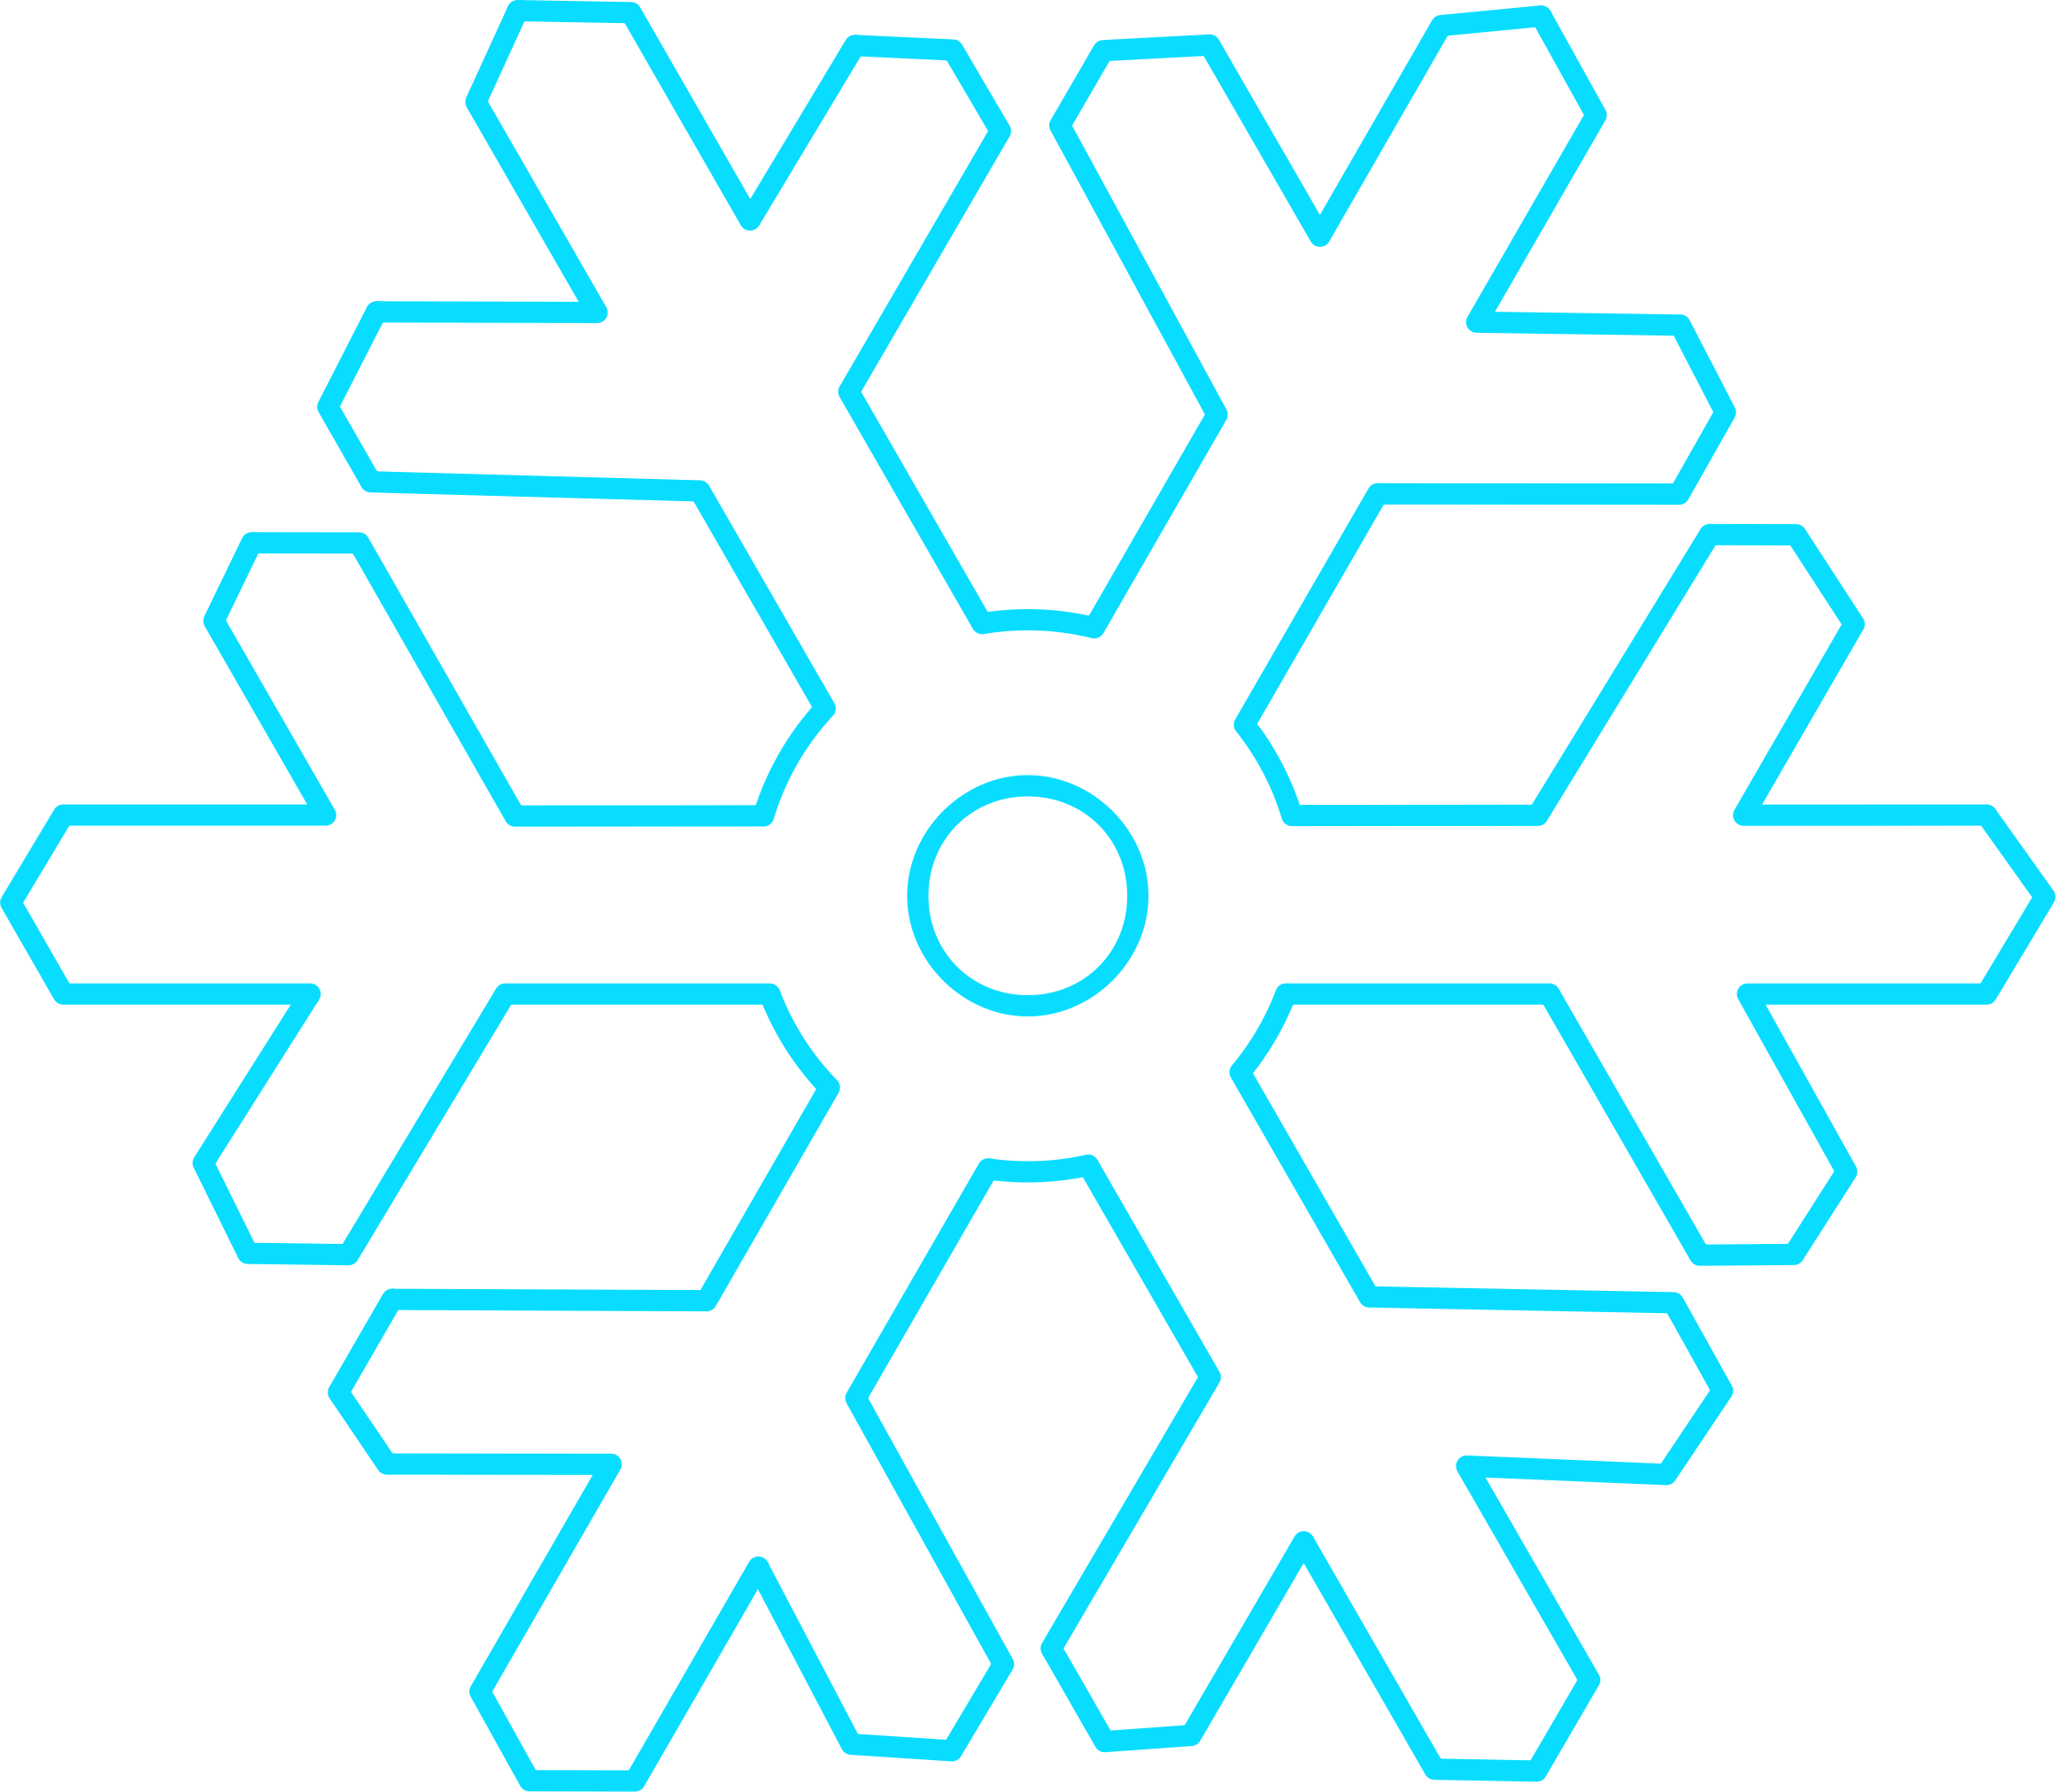 Blue snowflake outline clipart graphic library library Clipart - Flat white snowflake with hollow circular center graphic library library